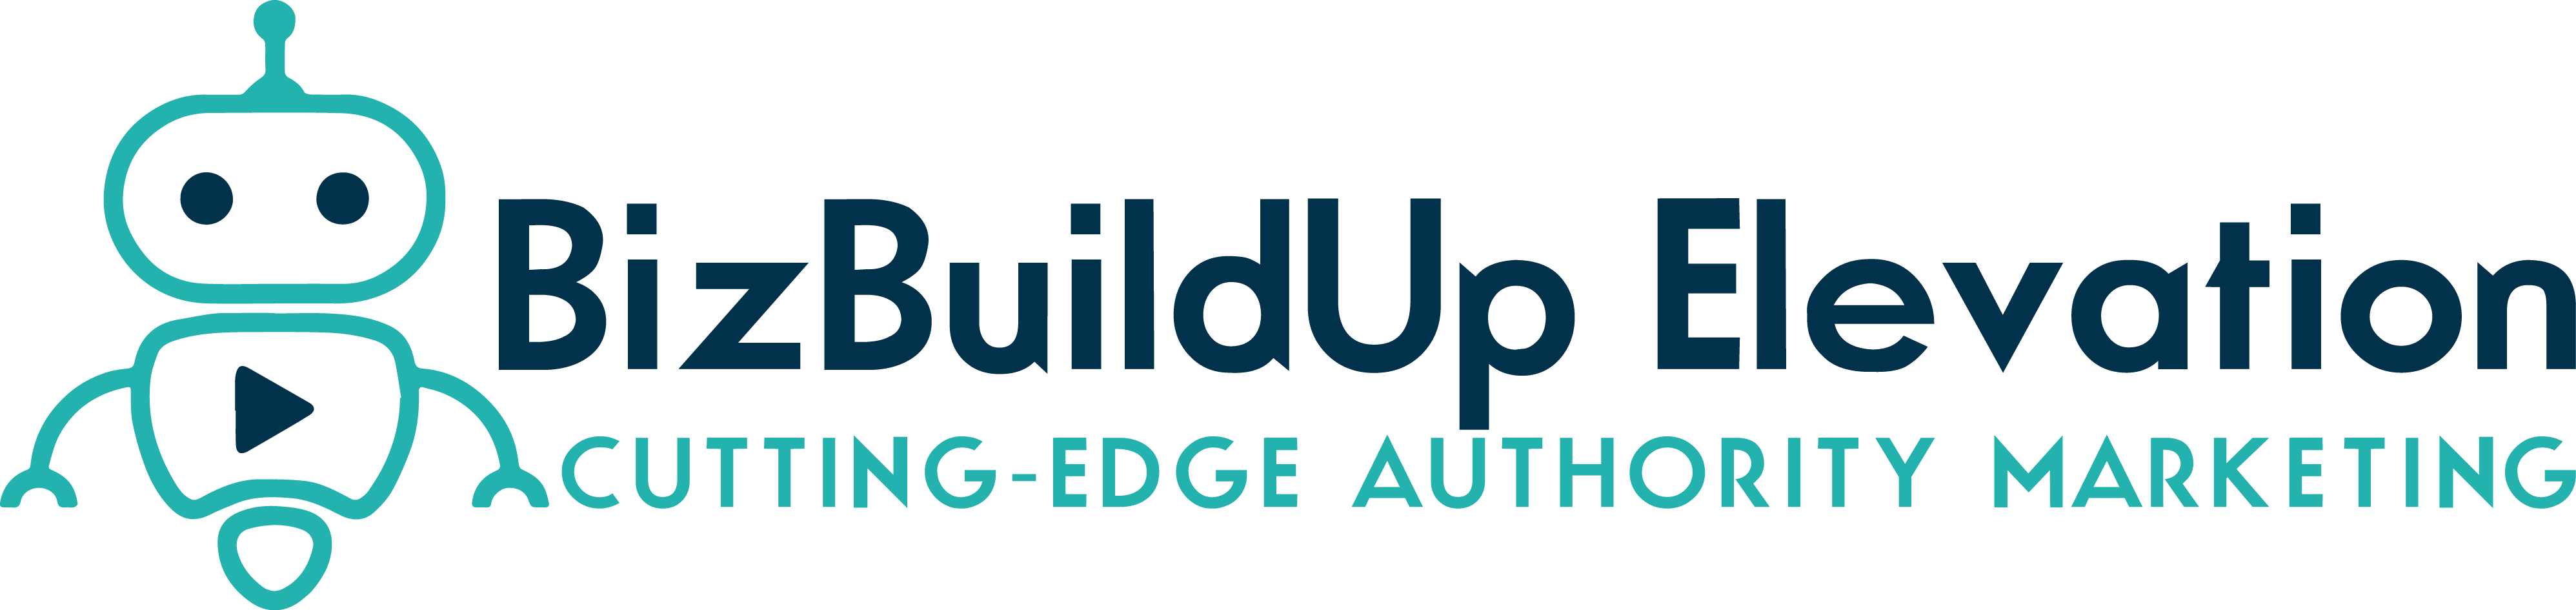 Authority Branding & Marketing for Small Businesses & SMEs - BizBuildUp Elevation